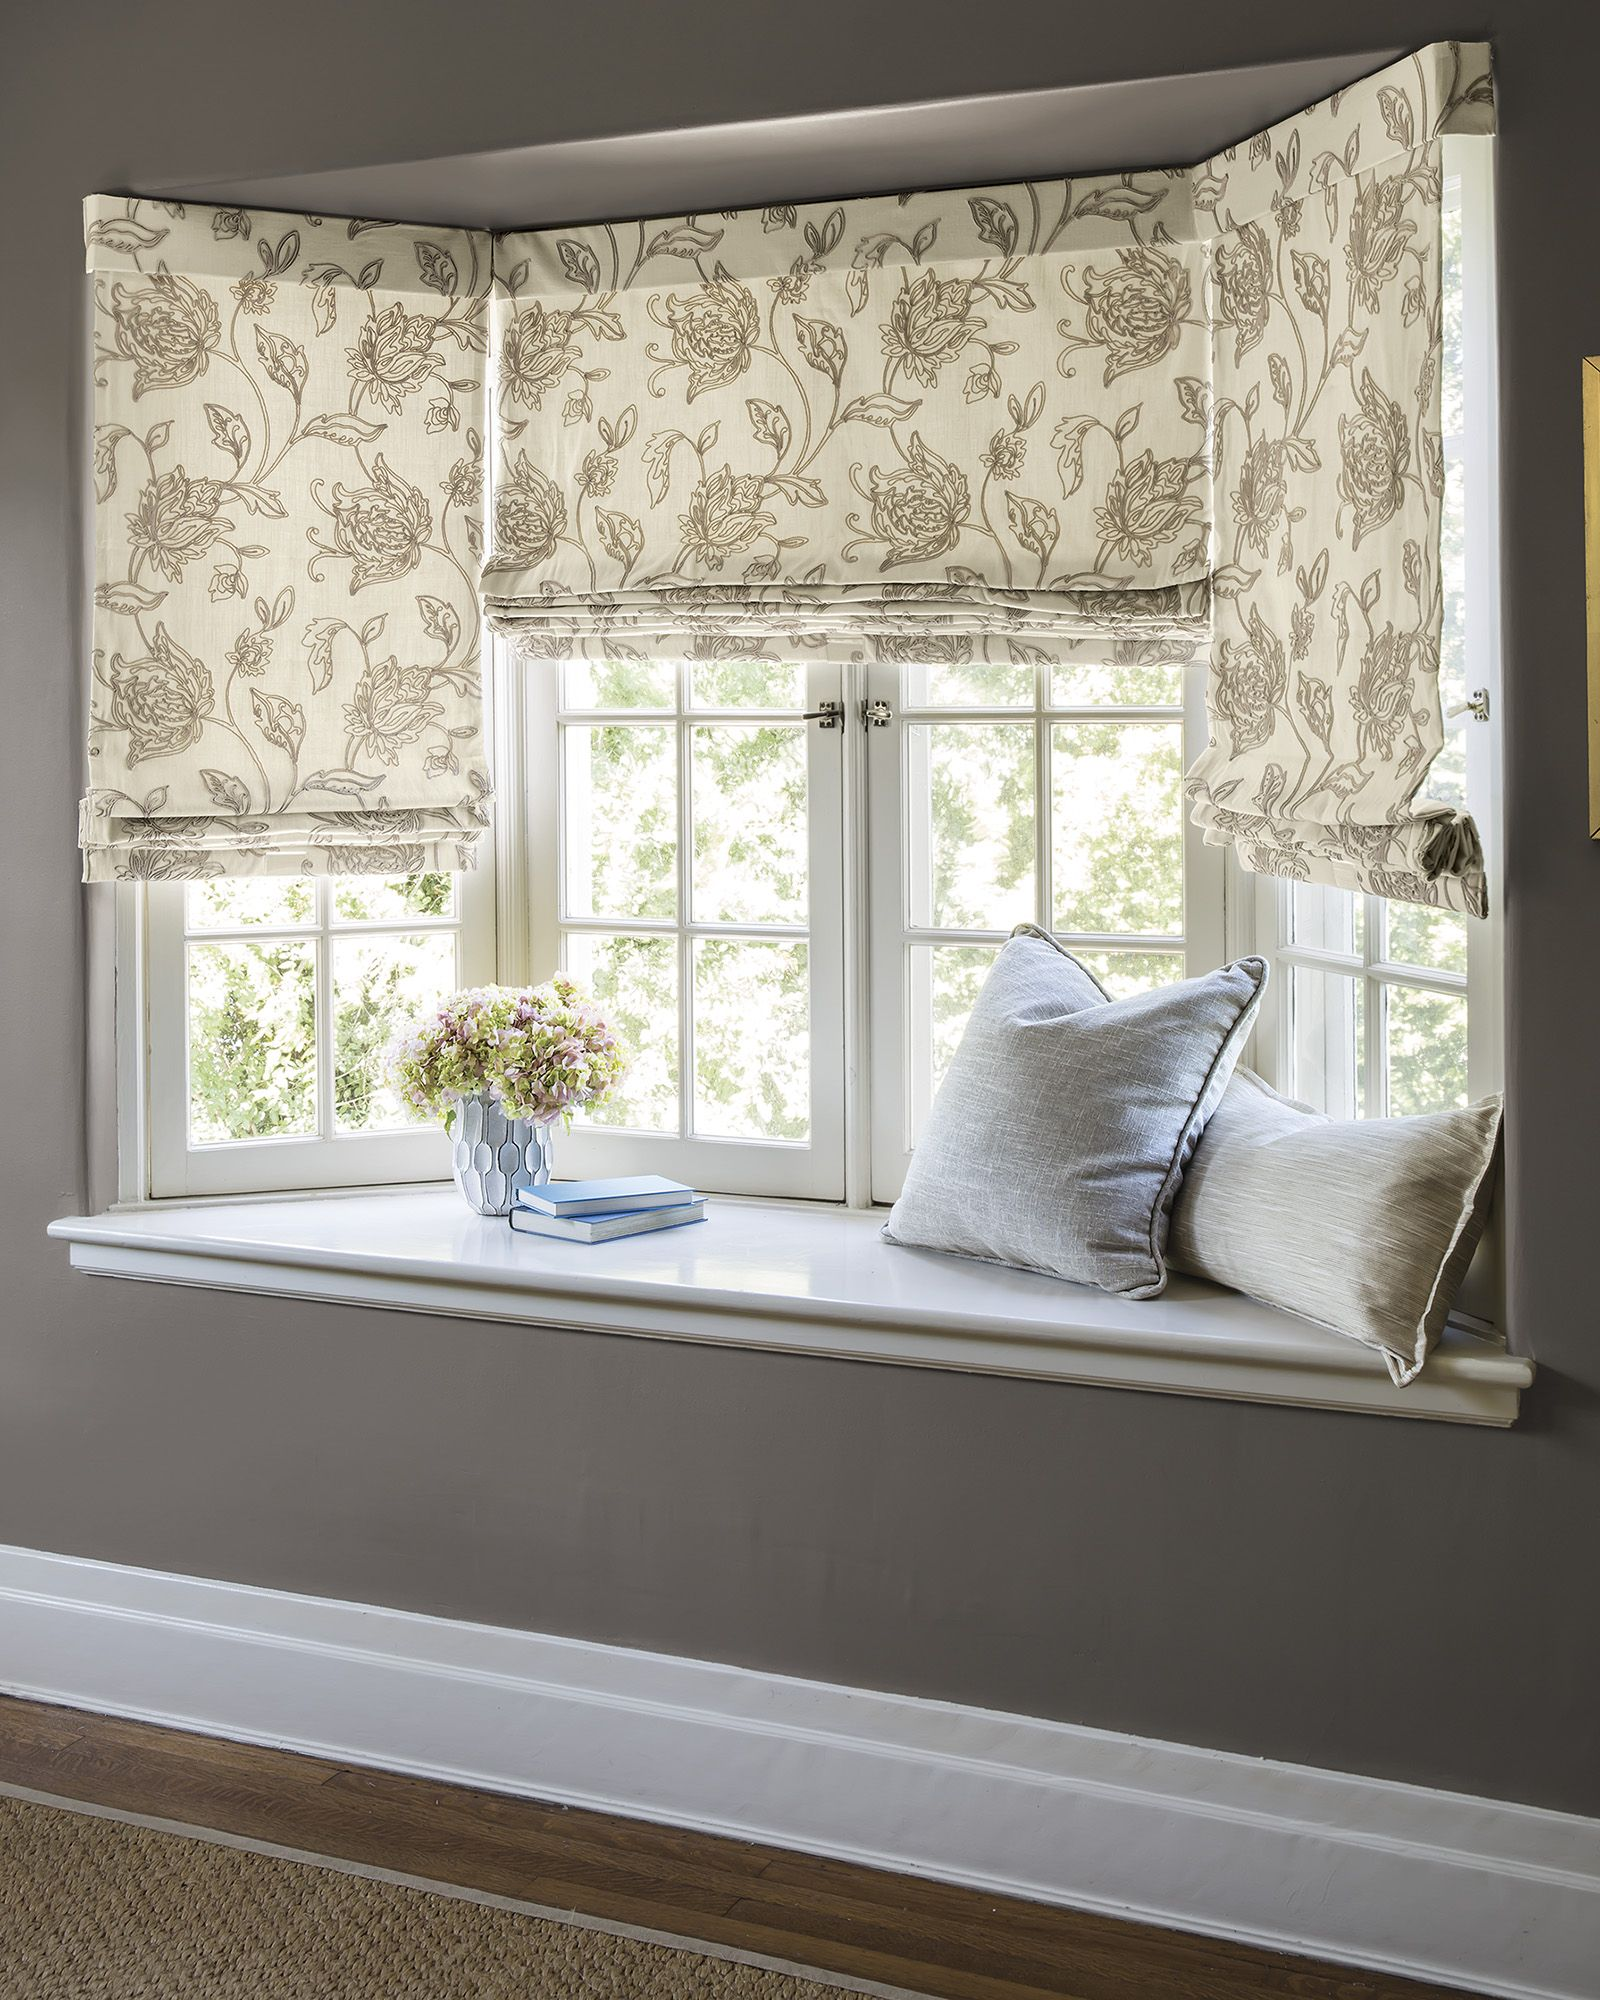 Create An Oasis Of Calm With Our Sophisticated Fabric Shades Hand